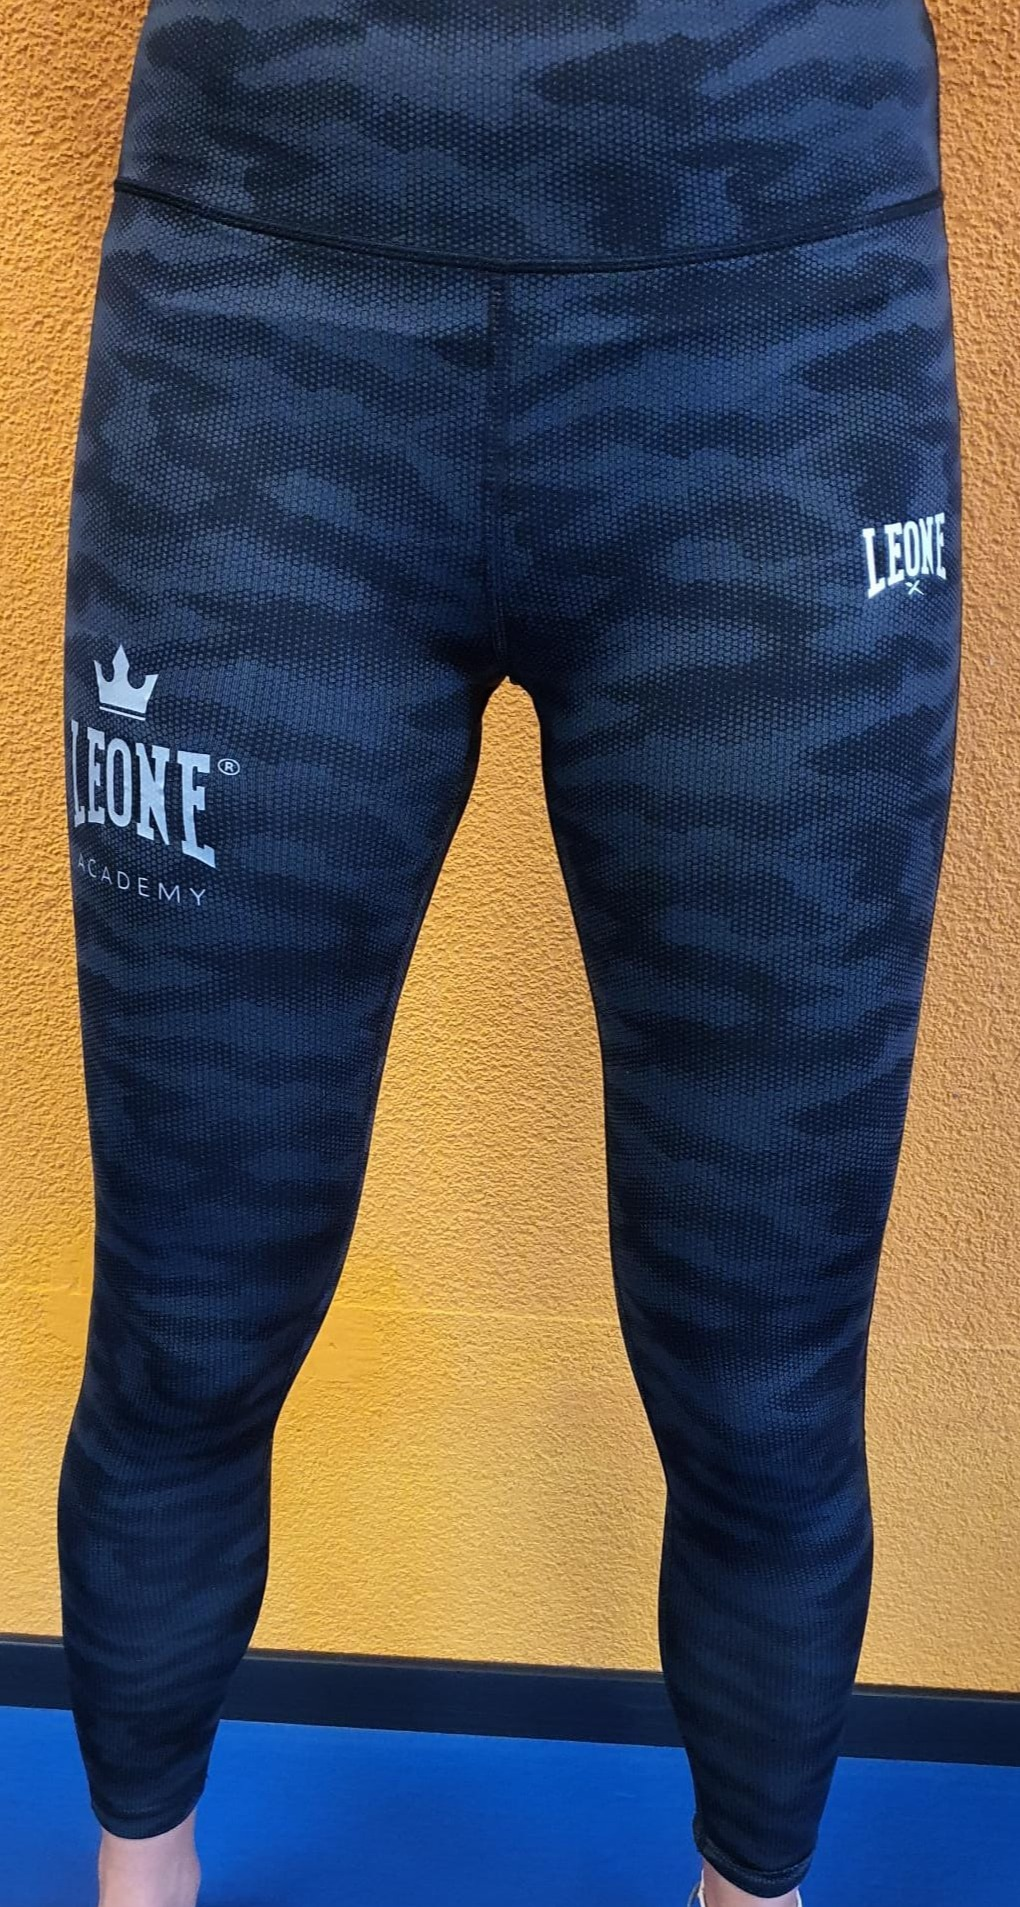 TEAM LEONE ACADEMY LEGGINGS